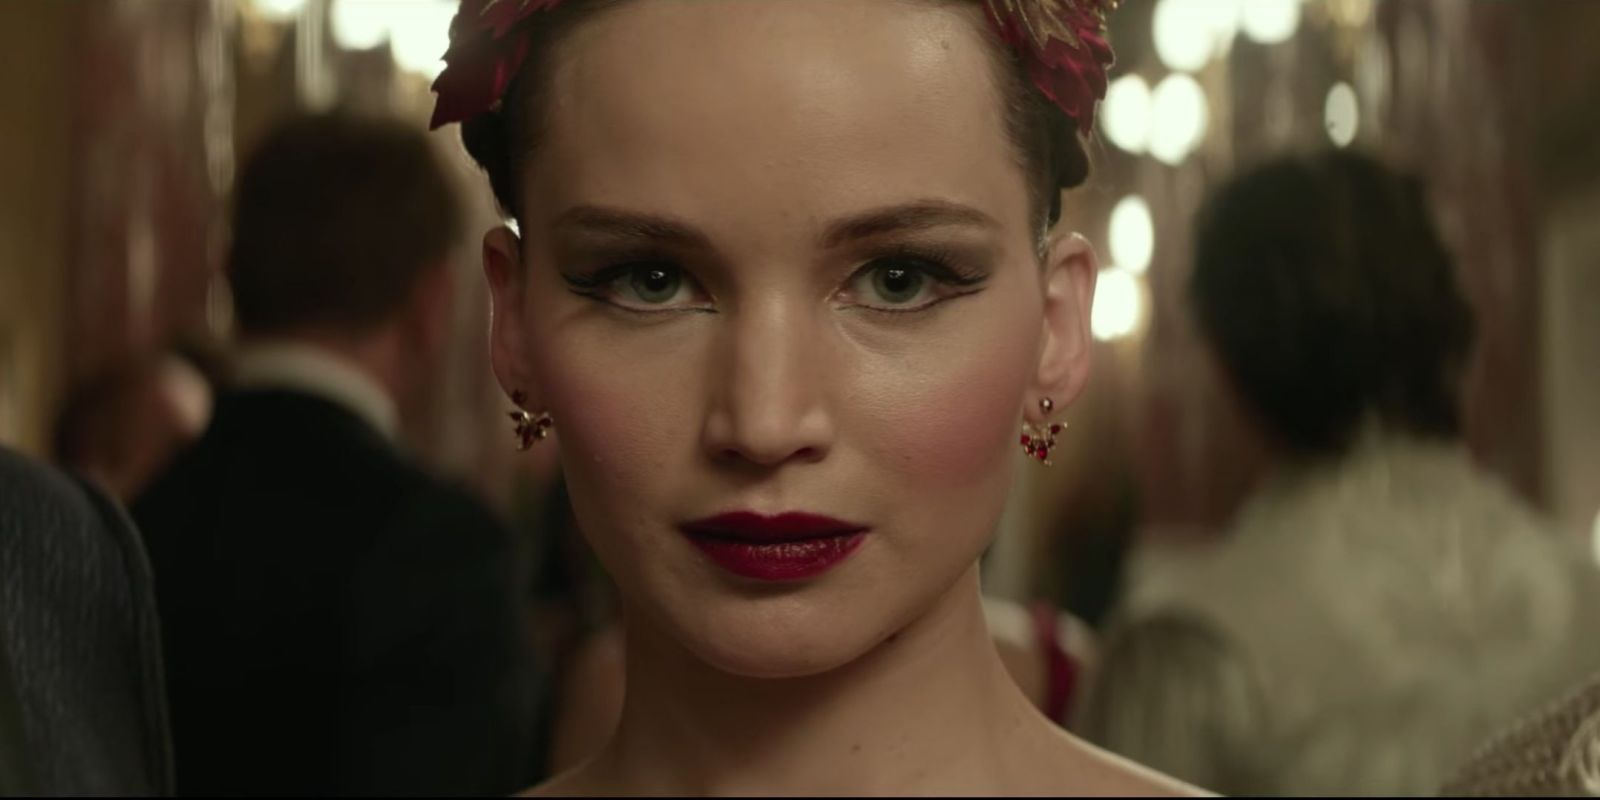 """Jennifer Lawrence's nudity in Red Sparrow made the crew feel """"uncomfortable"""""""